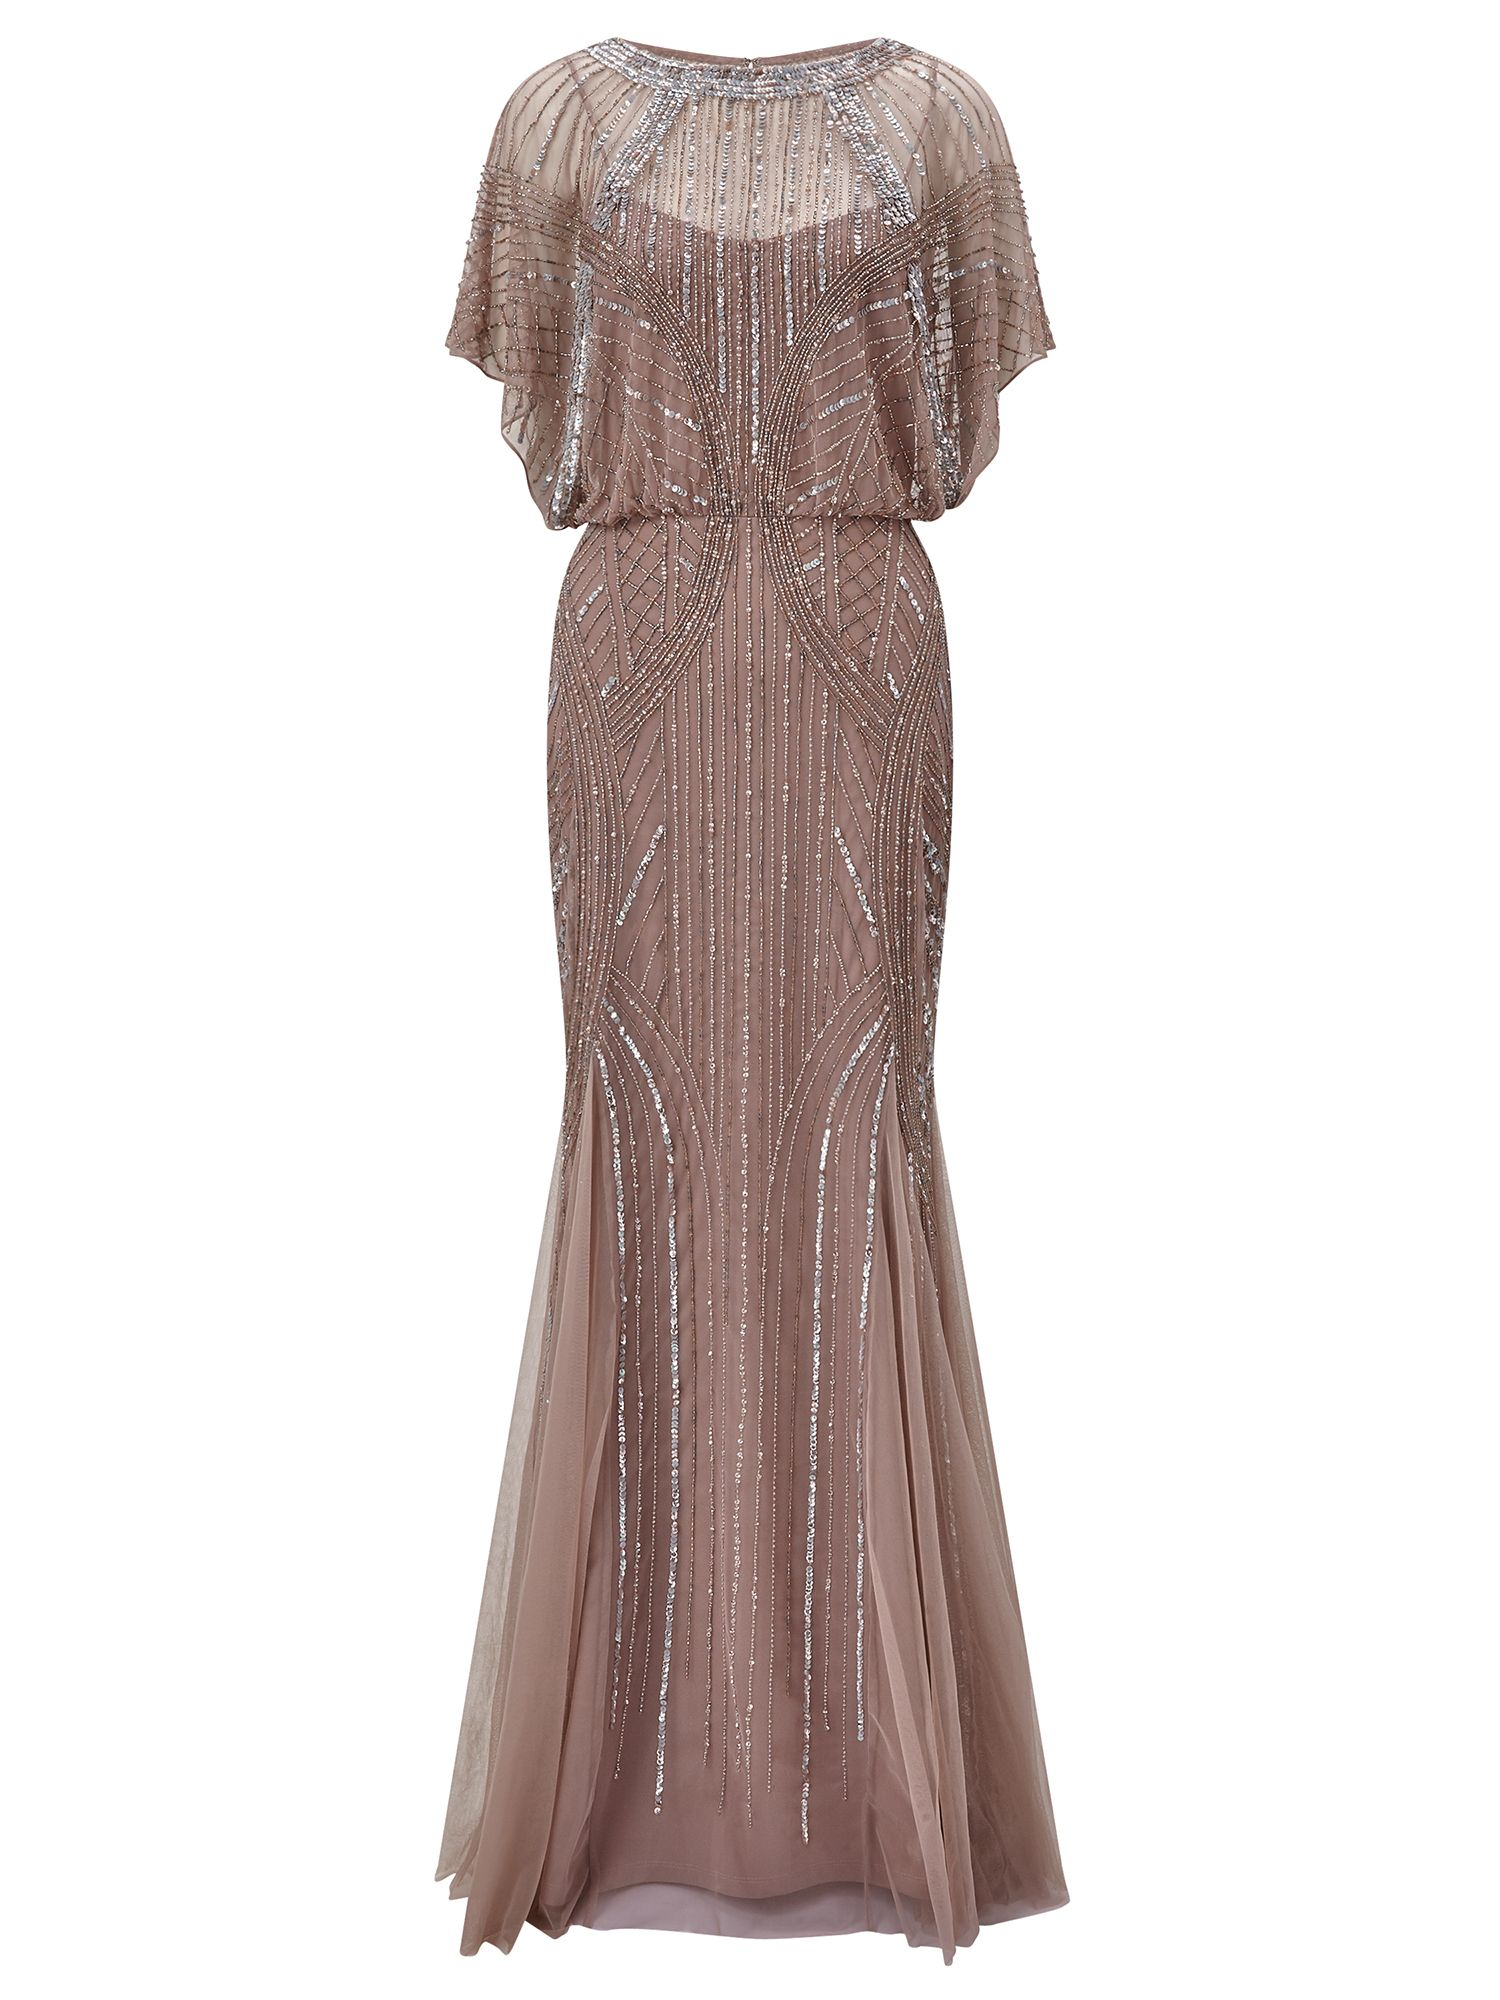 Ariella Couture Steffy Maxi Dress, Nude